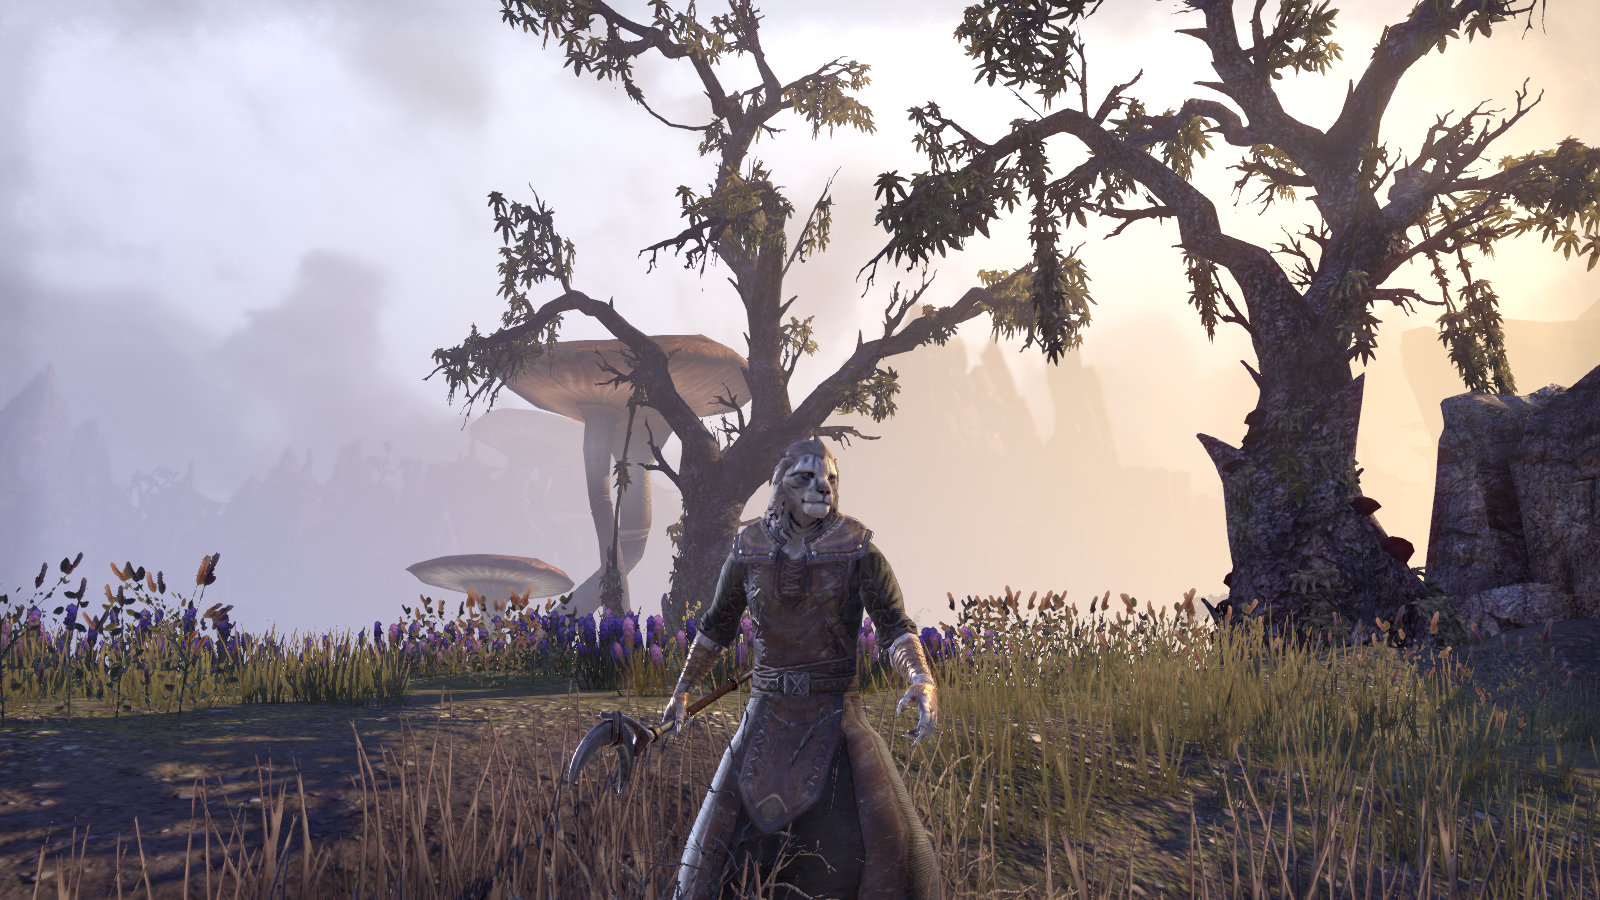 ESO: This One Is Just a Simple Khajiit | Superior Realities